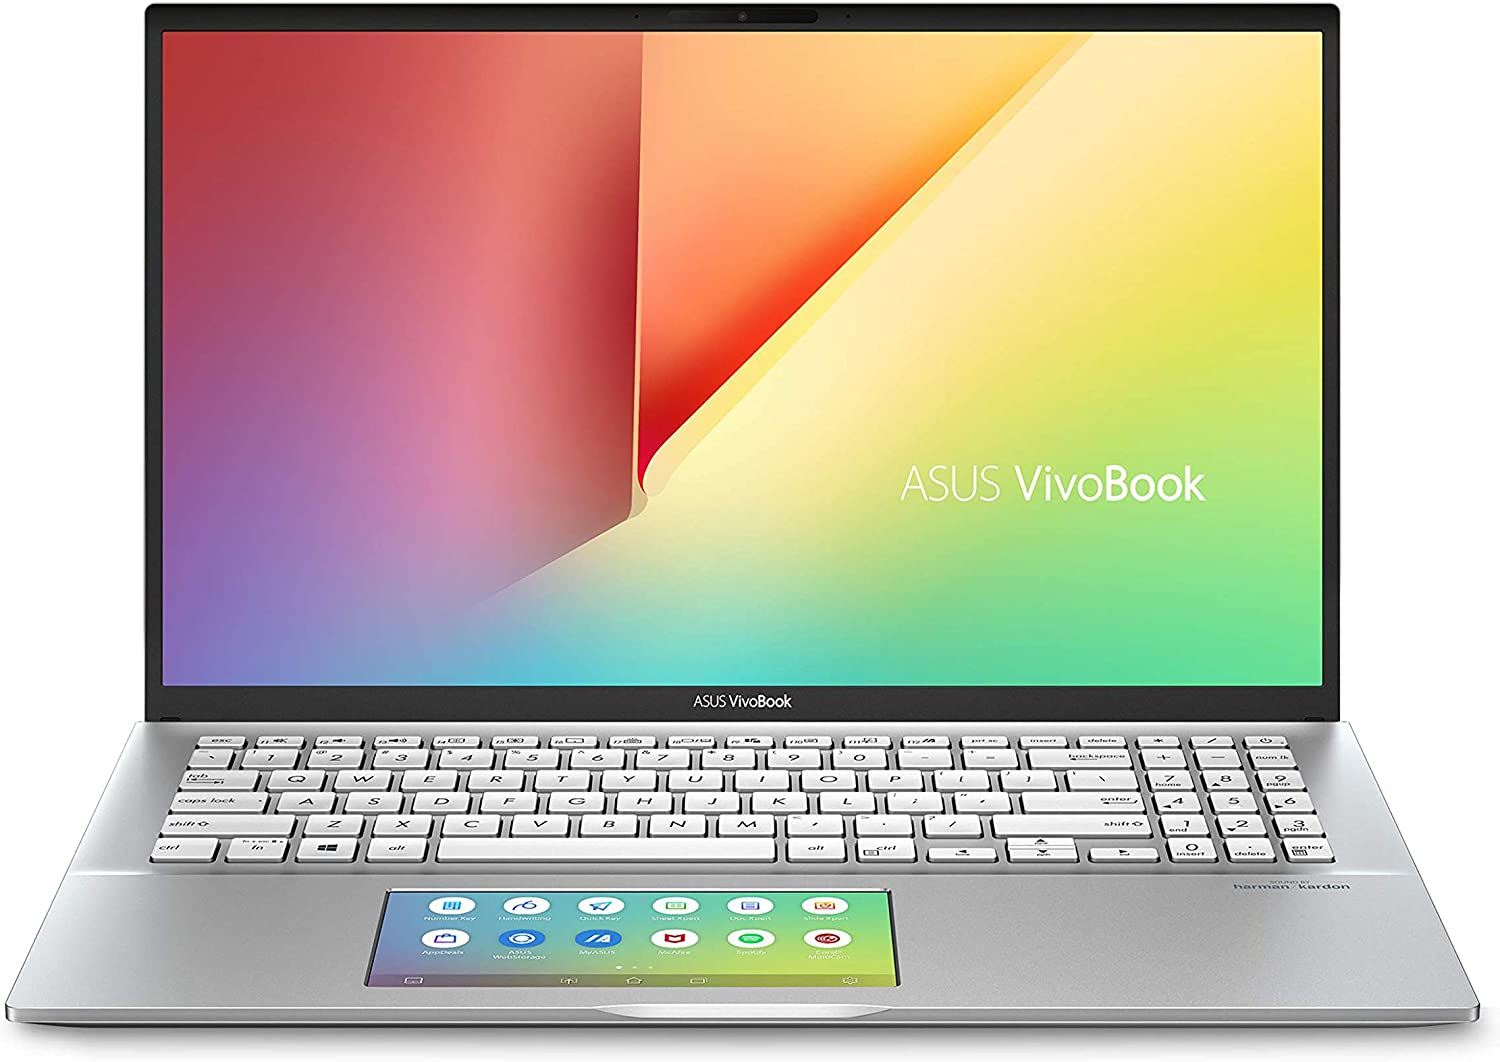 "Amazon.com: ASUS VivoBook S15 S532 Thin & Light Laptop, 15.6"" FHD, Intel  Core i7-10510U CPU, 16GB RAM, 1TB PCIe SSD, NVIDIA GeForce MX250 Graphics,  IR Camera, Windows 10 Home, S532FL-DS79, Transparent Silver:"